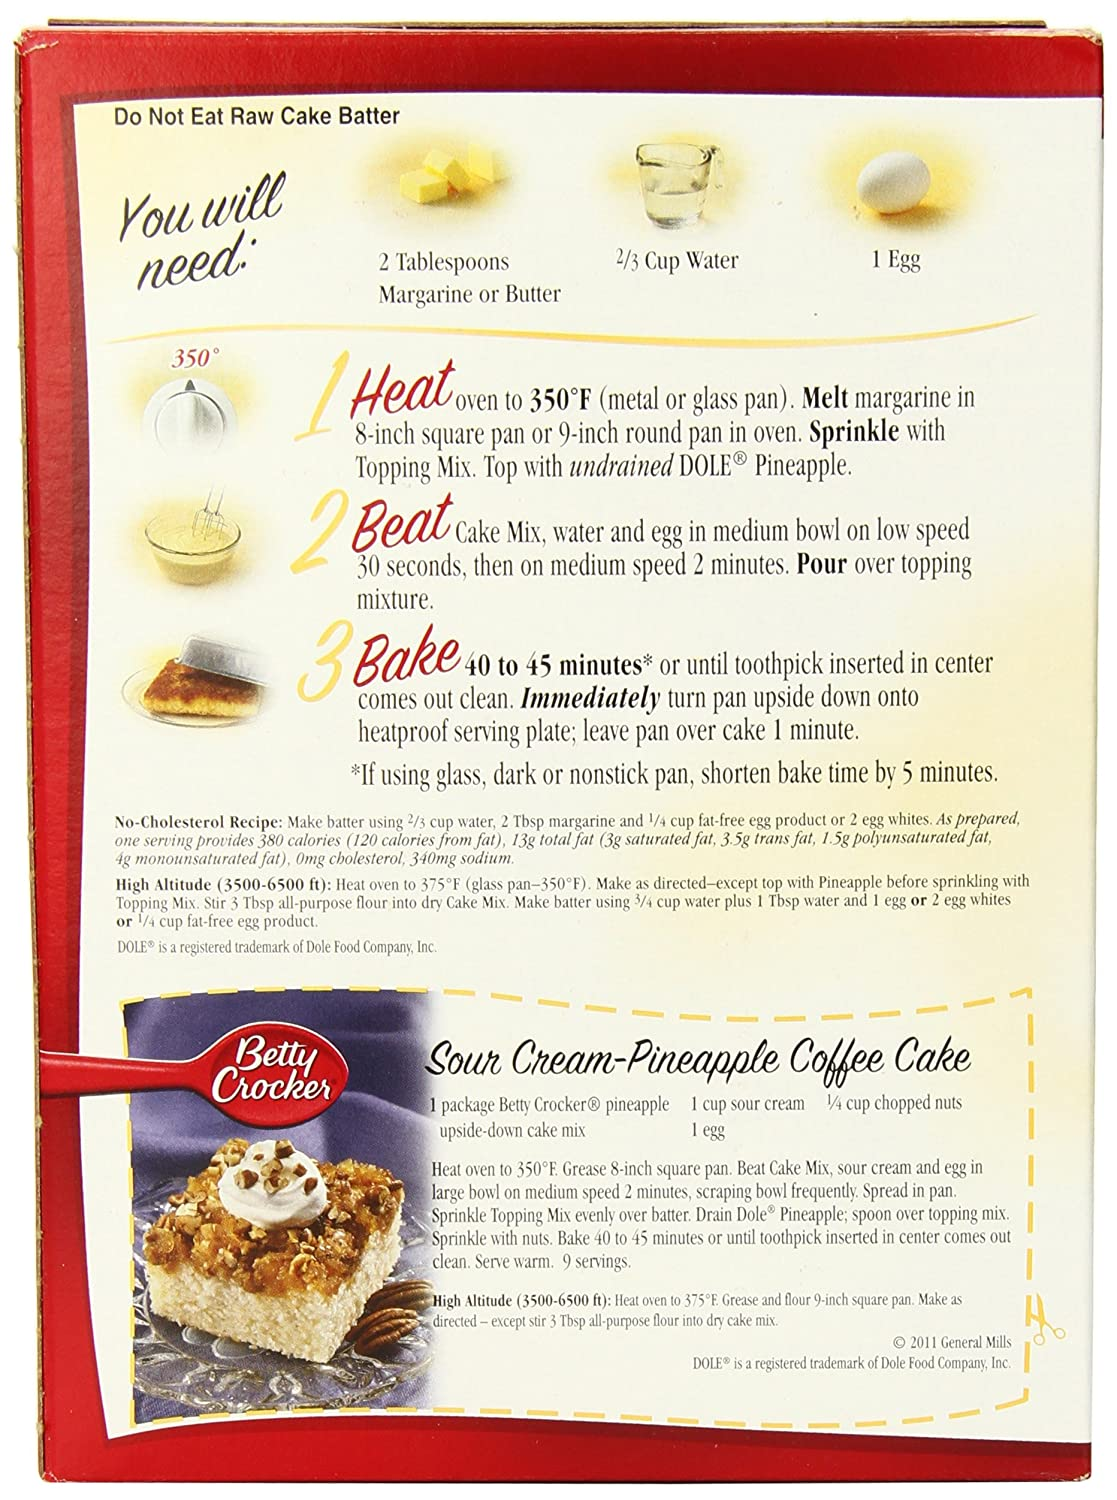 Gluten Free Cake Mix Instructions